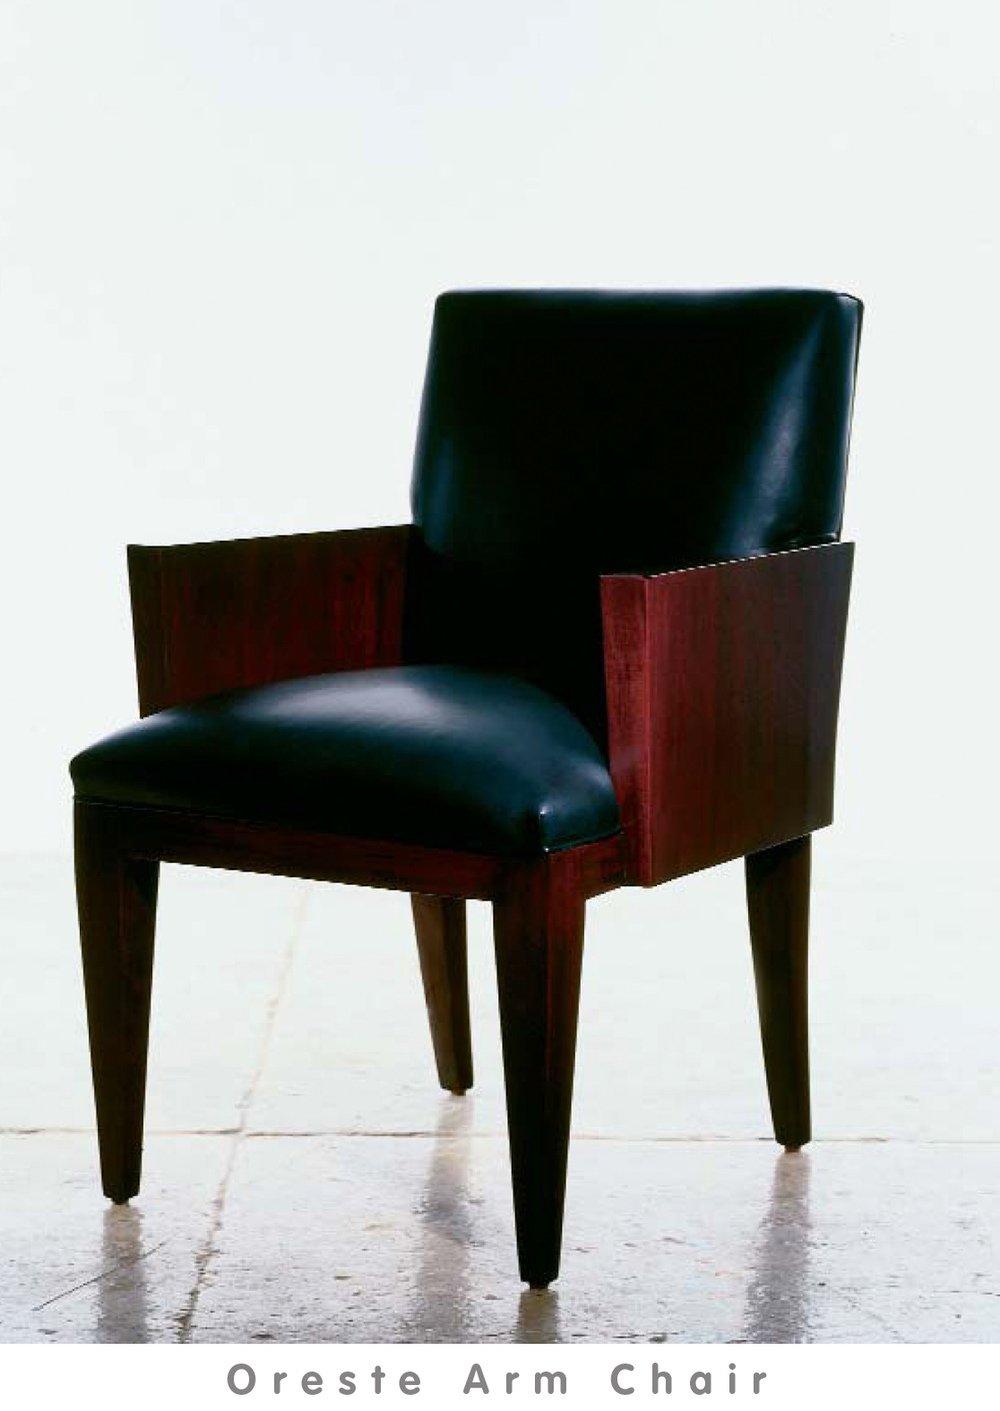 Oreste Arm Chair